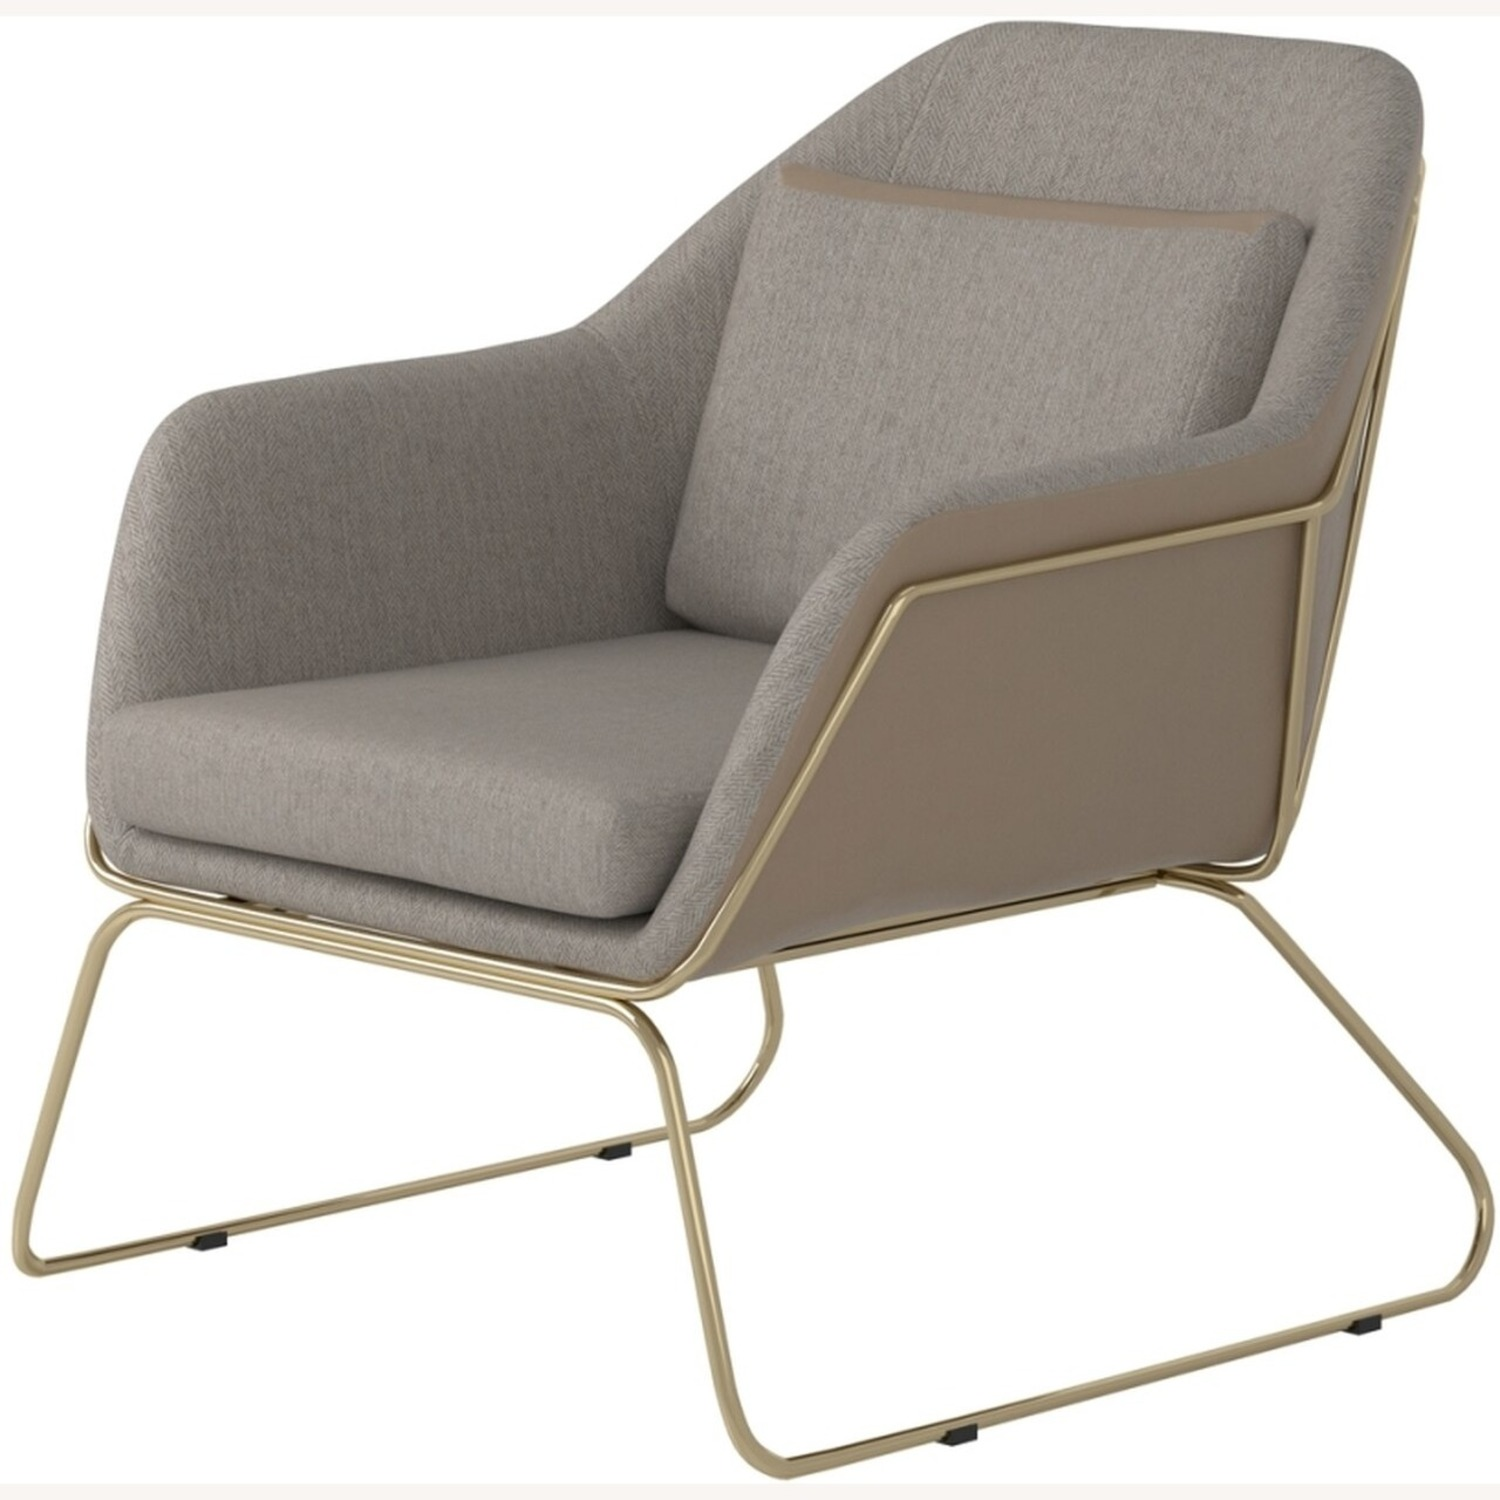 Accent Chair In Linen-Like Beige Fabric - image-1